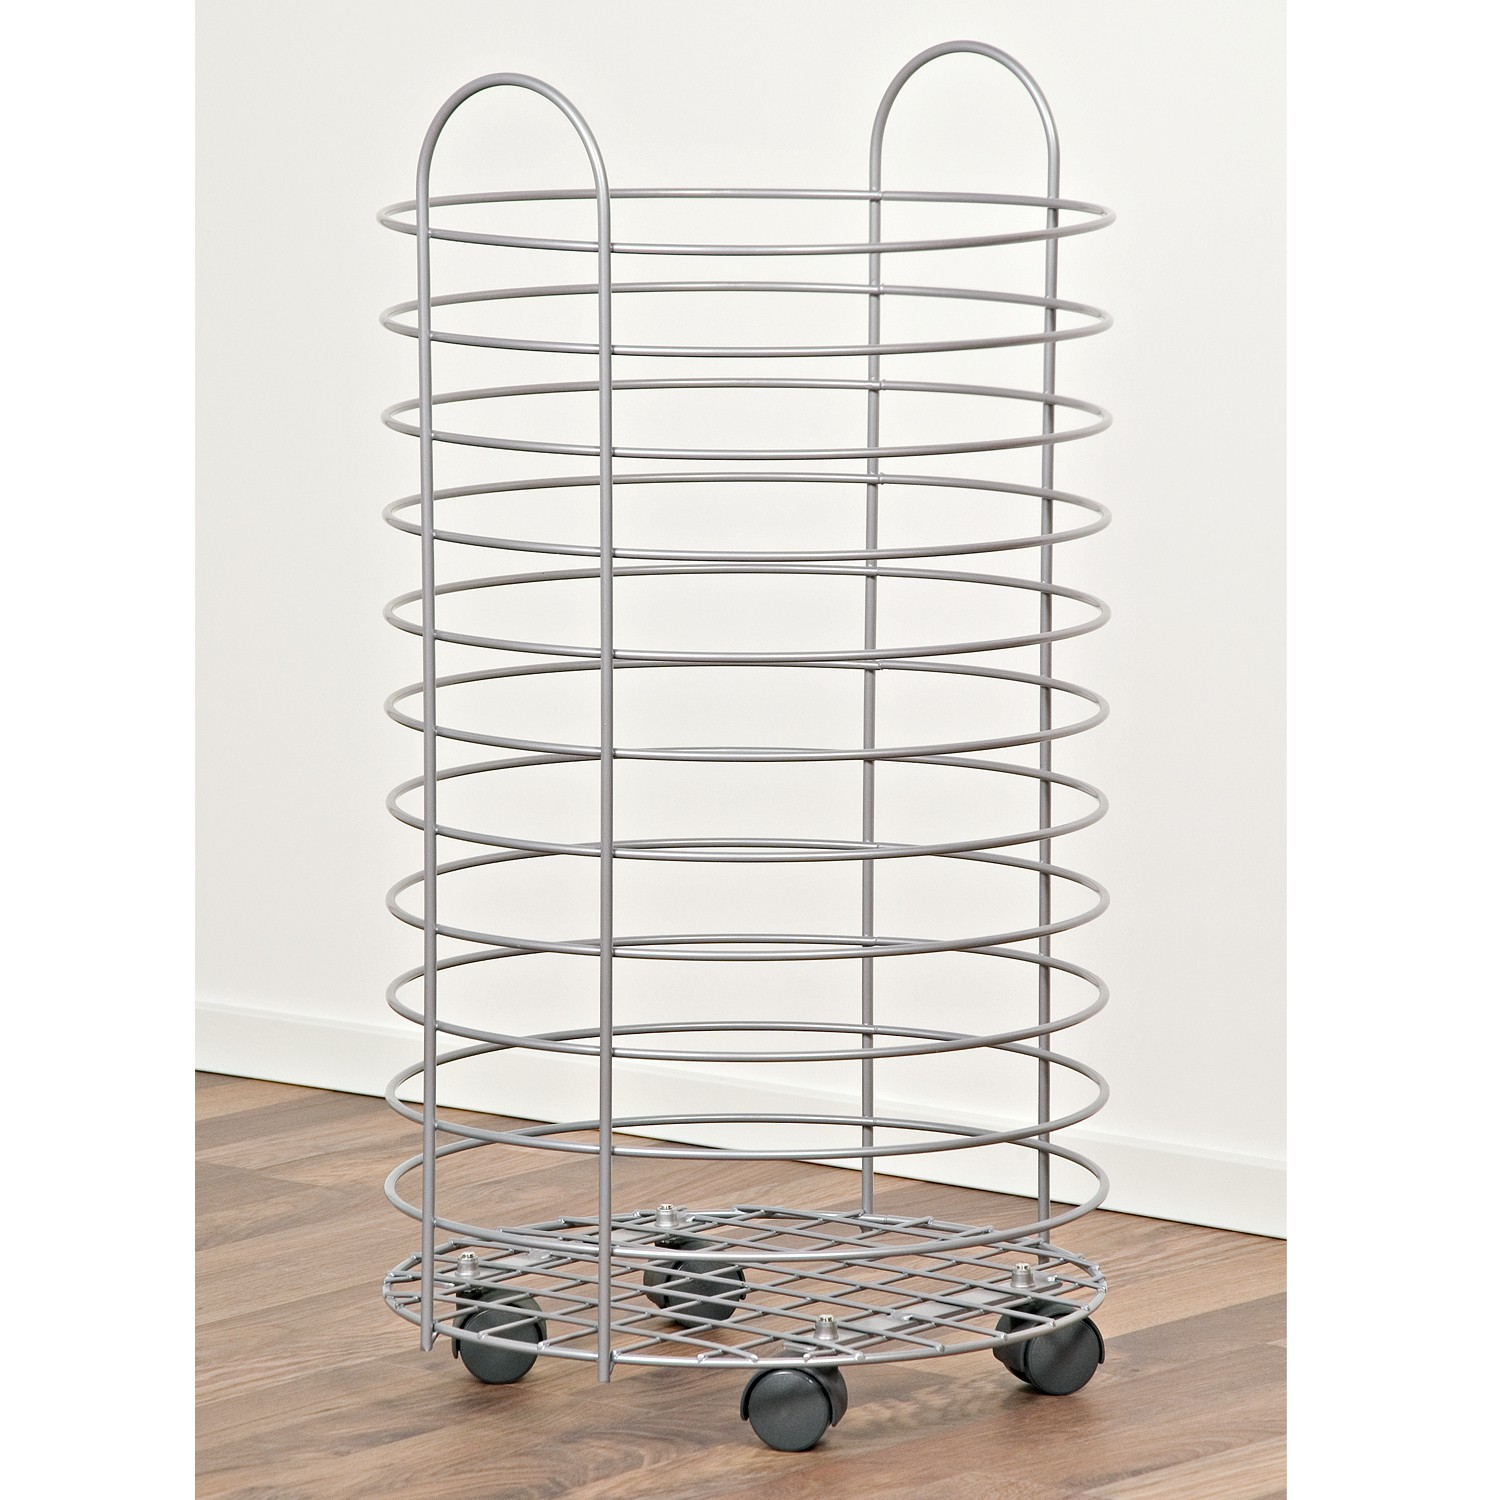 Storage basket with wheels / high / material steel wire - Innovative ...